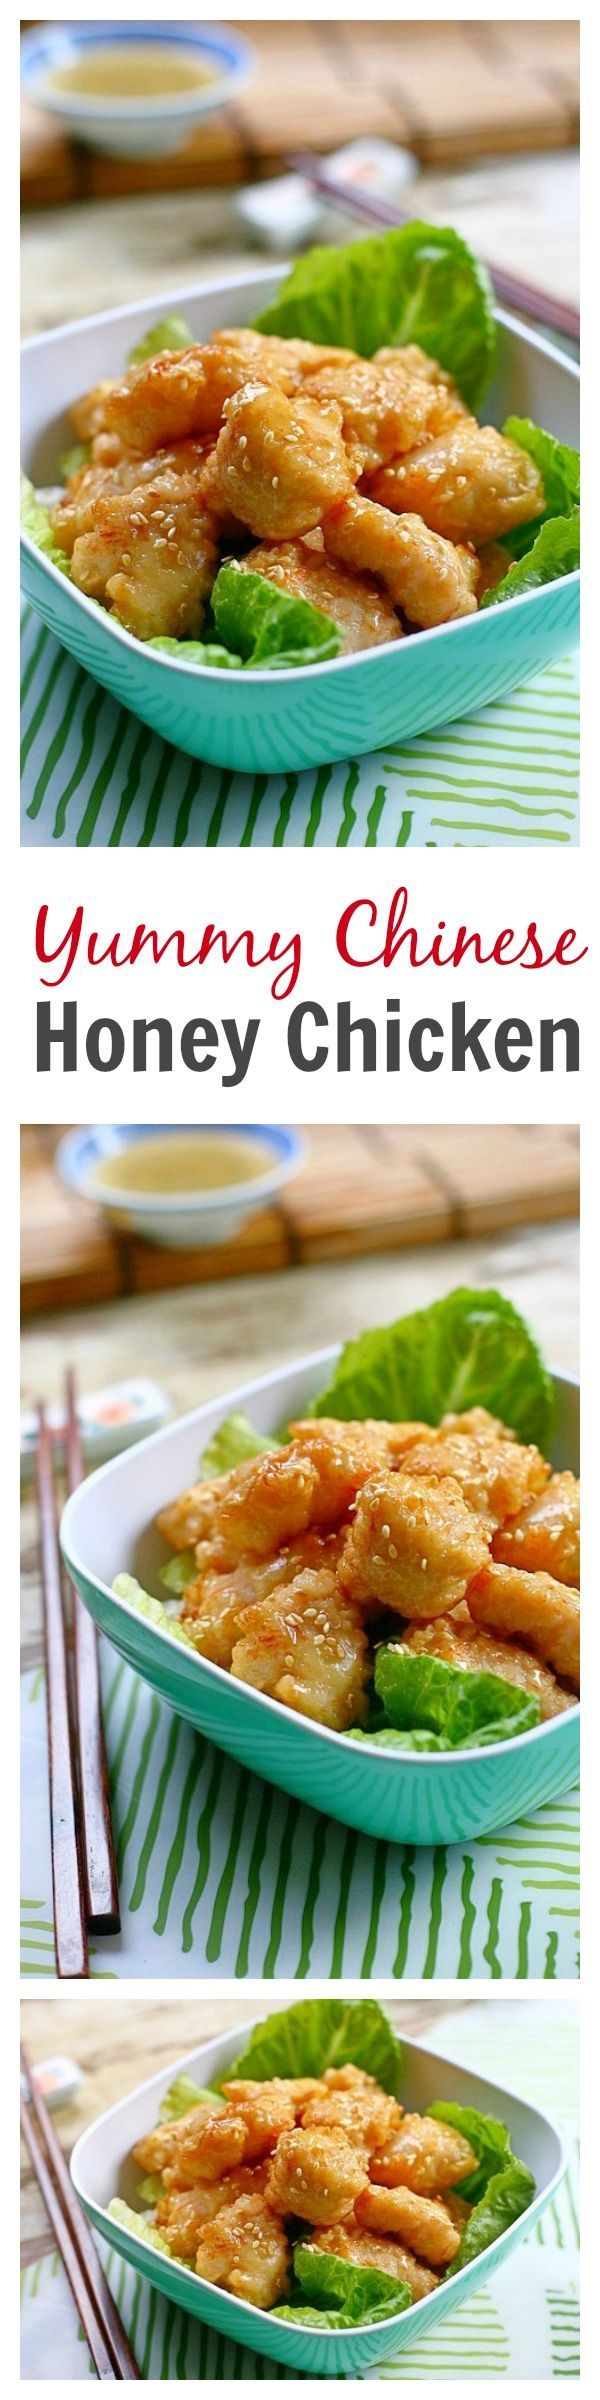 Super yummy Chinese honey chicken. Crispy chicken pieces coated with sweet and sticky honey sauce. To-die-for recipe that you can make at home | rasamalaysia.com